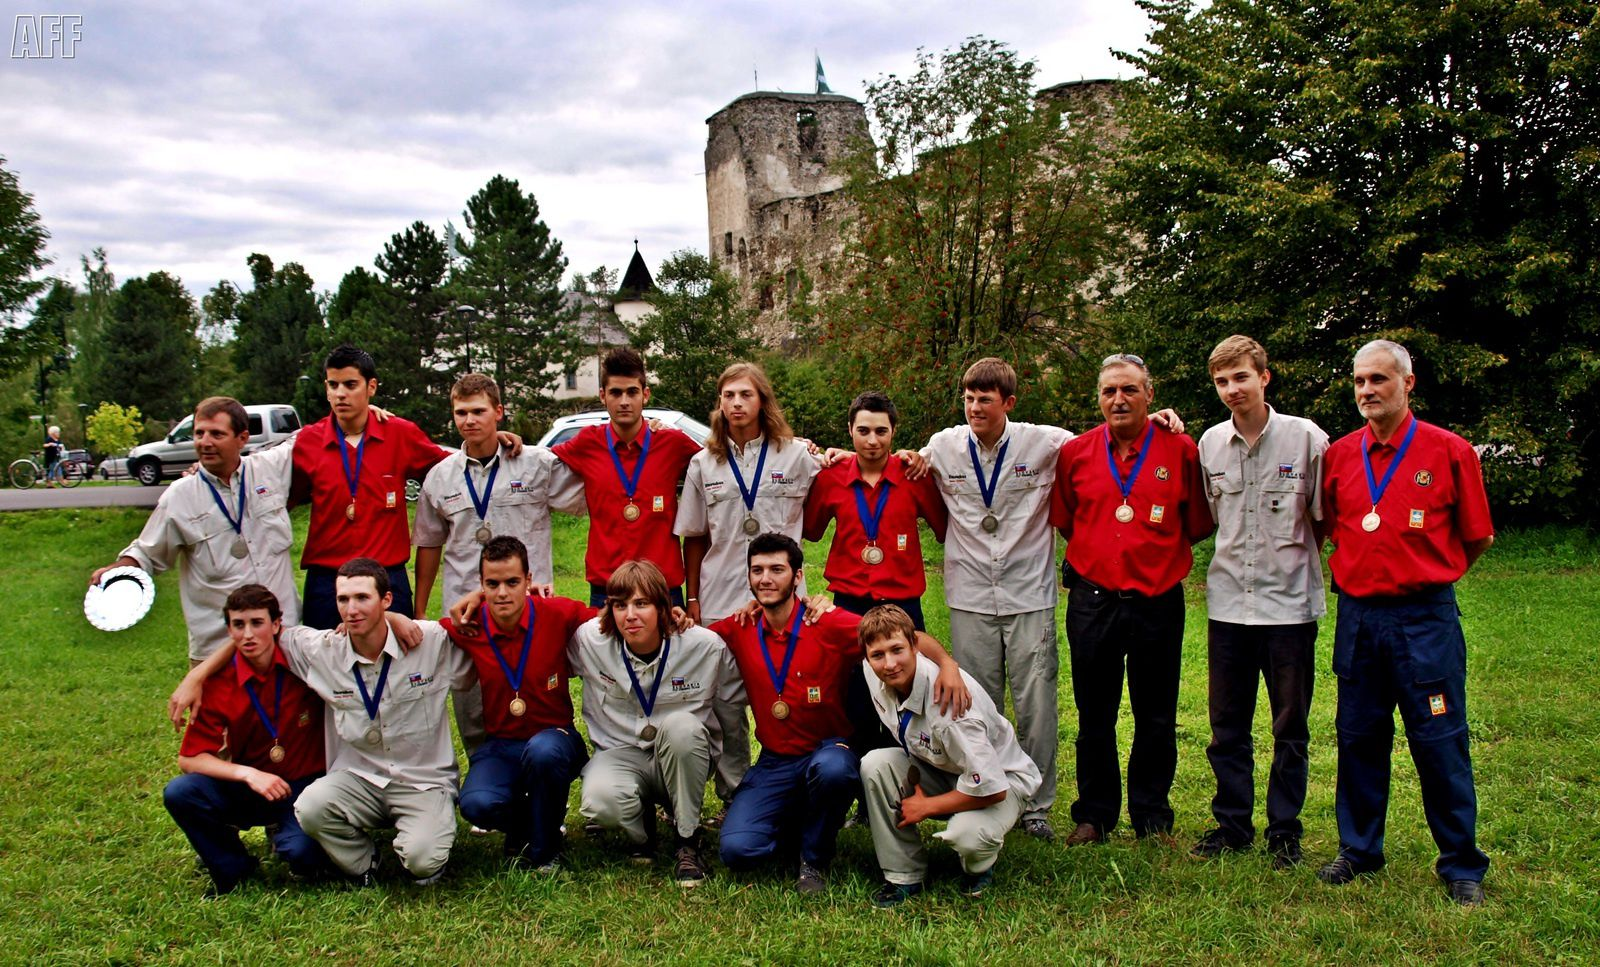 Foto con los anfitriones y segundos clasificados ( Slovakia). - Photo with hosts and Second Classified (Slovakia)